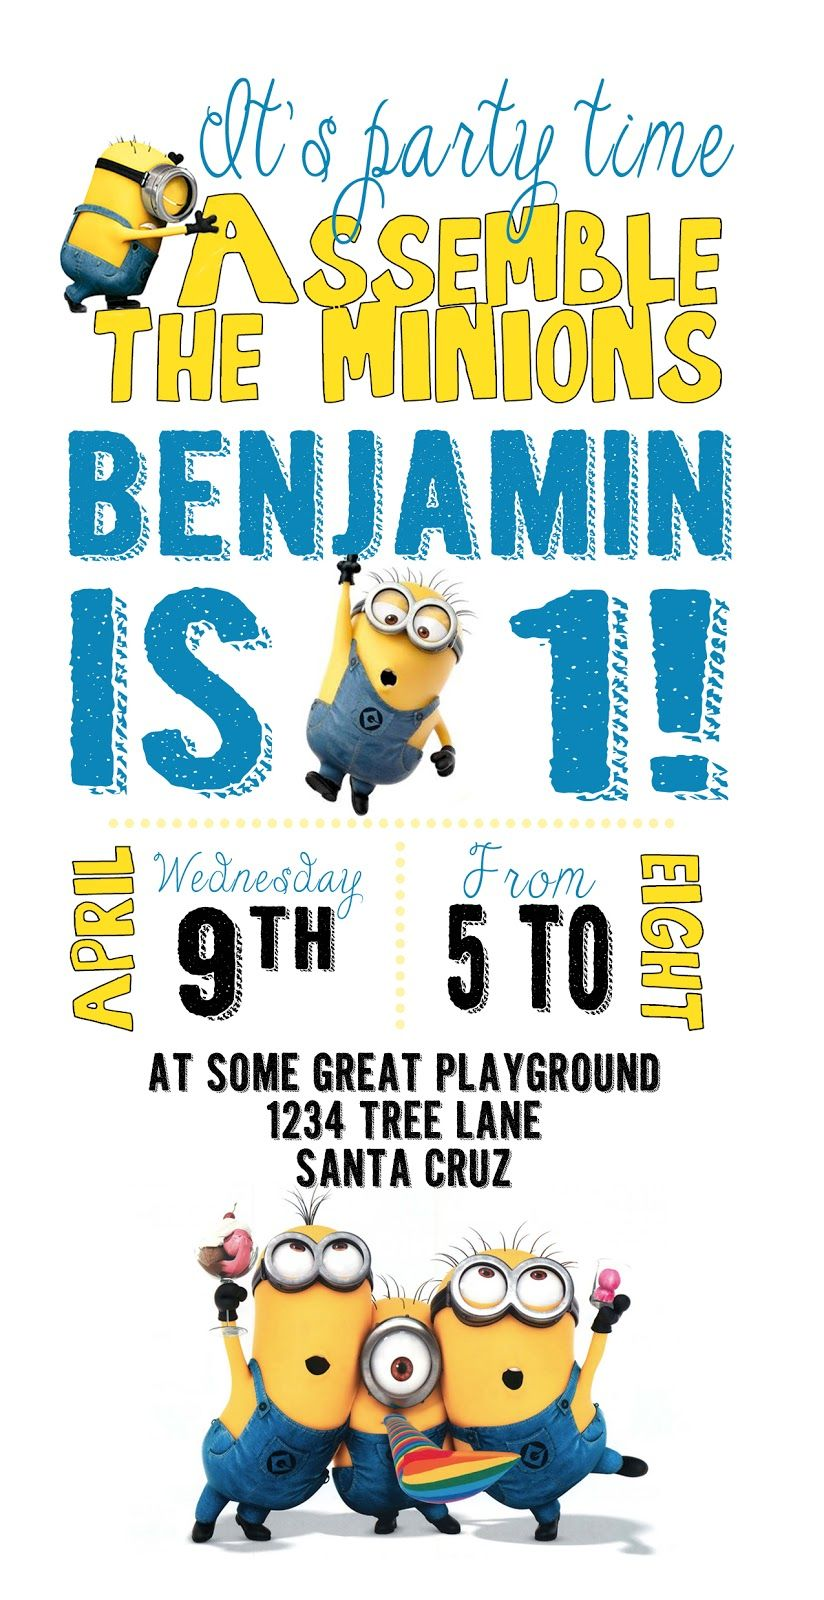 photograph relating to Free Printable Minion Invitations named Do-it-yourself Style and design Den: Minion birthday get together with absolutely free printables